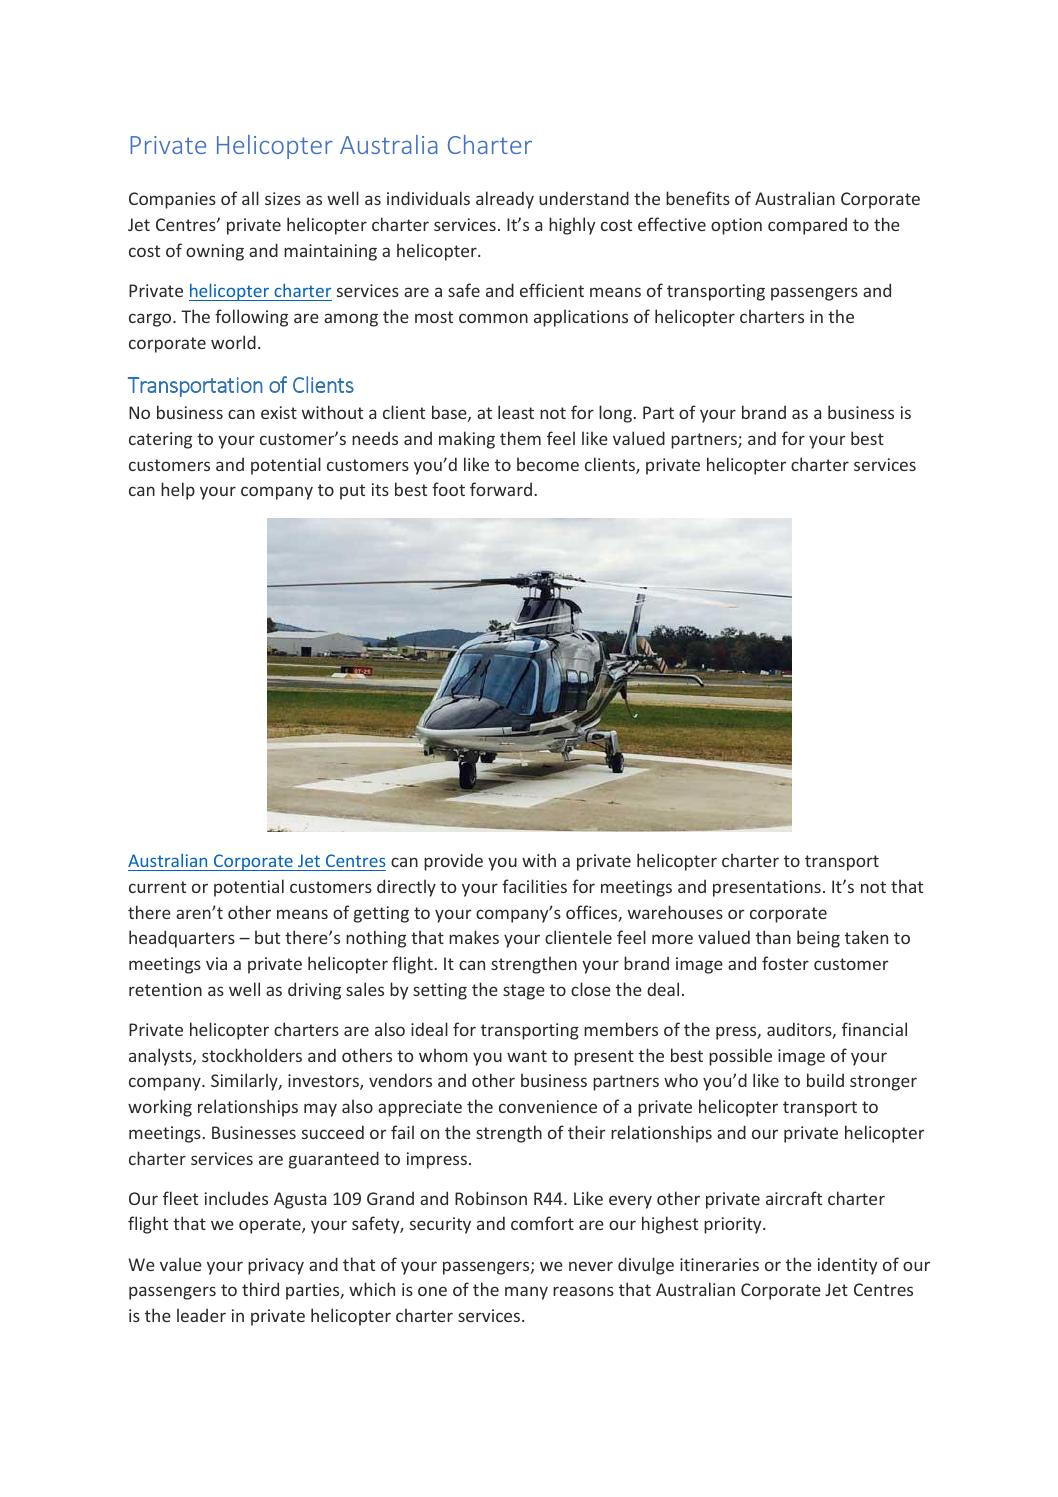 helicopter australia charter by Australian Corporate Jet ... on turboprop aircraft companies, unmanned aircraft companies, atv companies, church organ companies, commercial plane companies, aerial application companies, tow truck companies, fire companies,